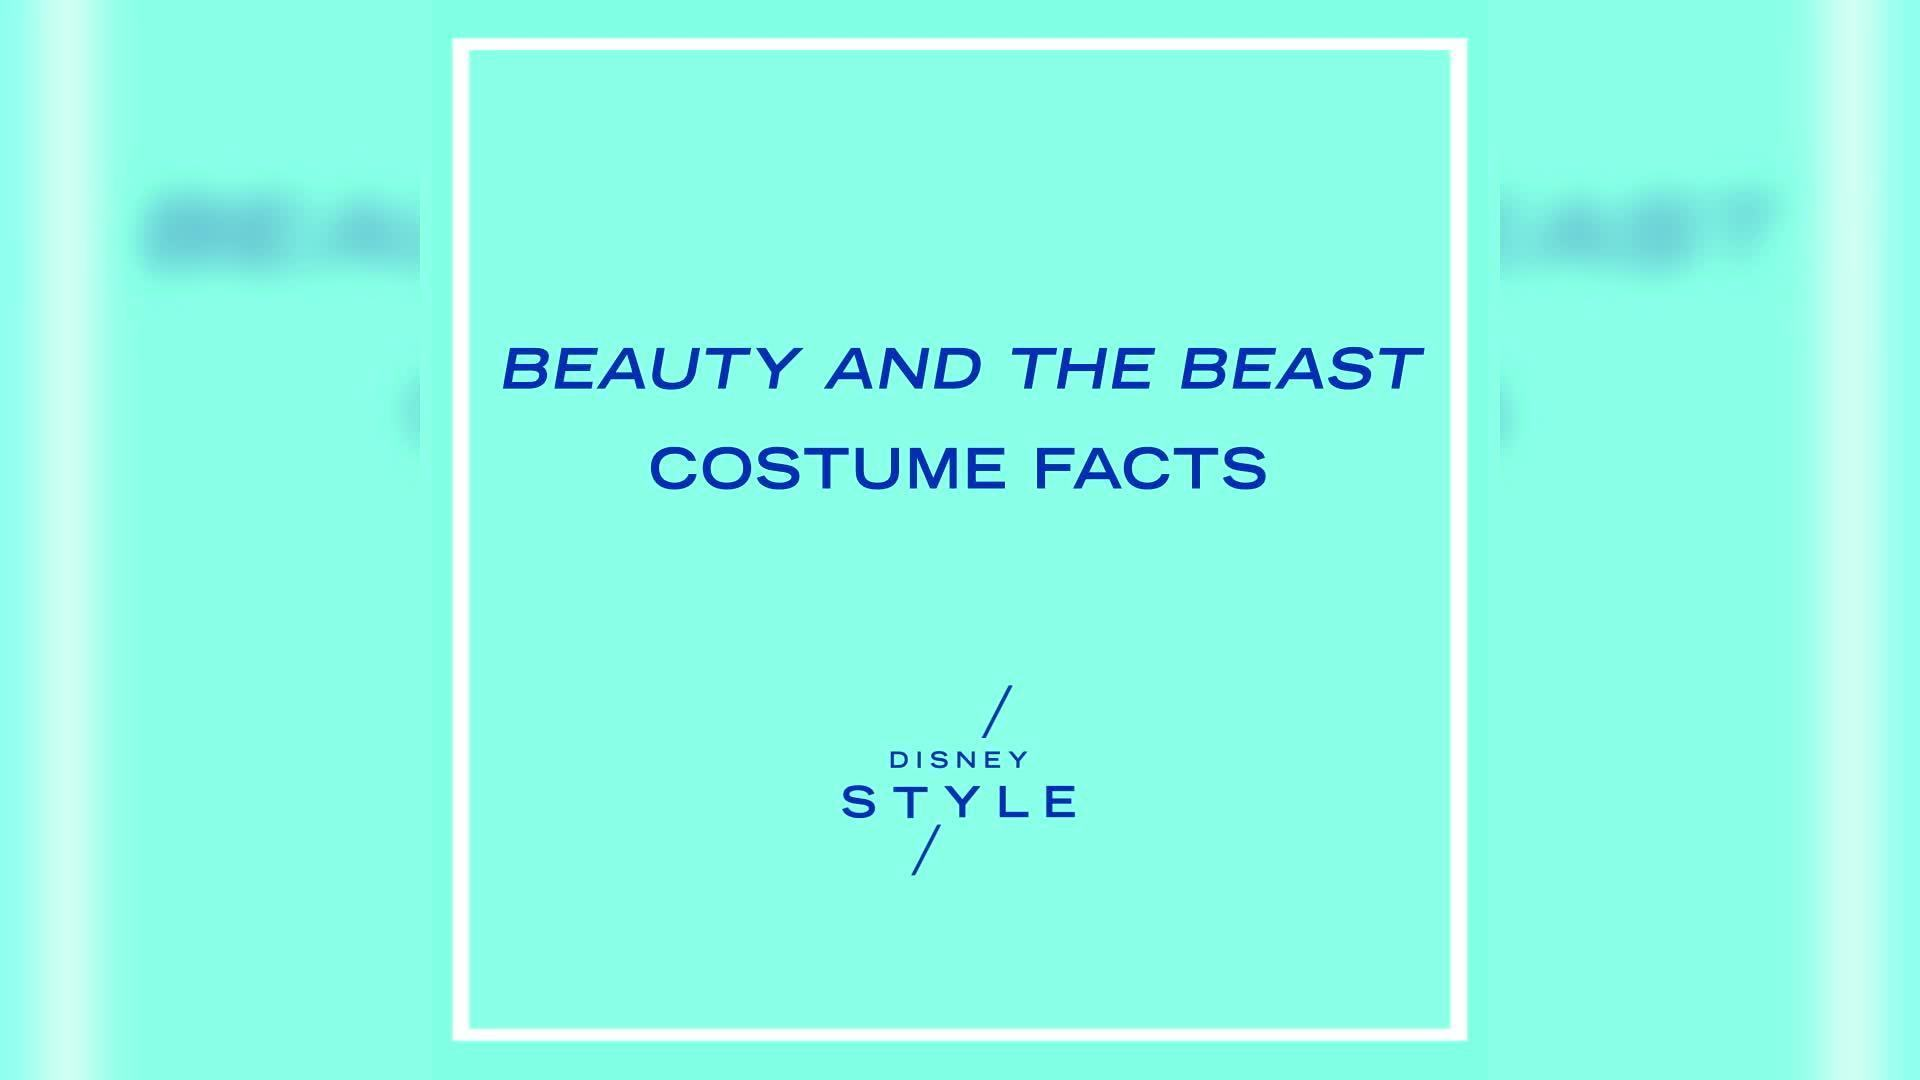 Beauty and the Beast Costume Facts